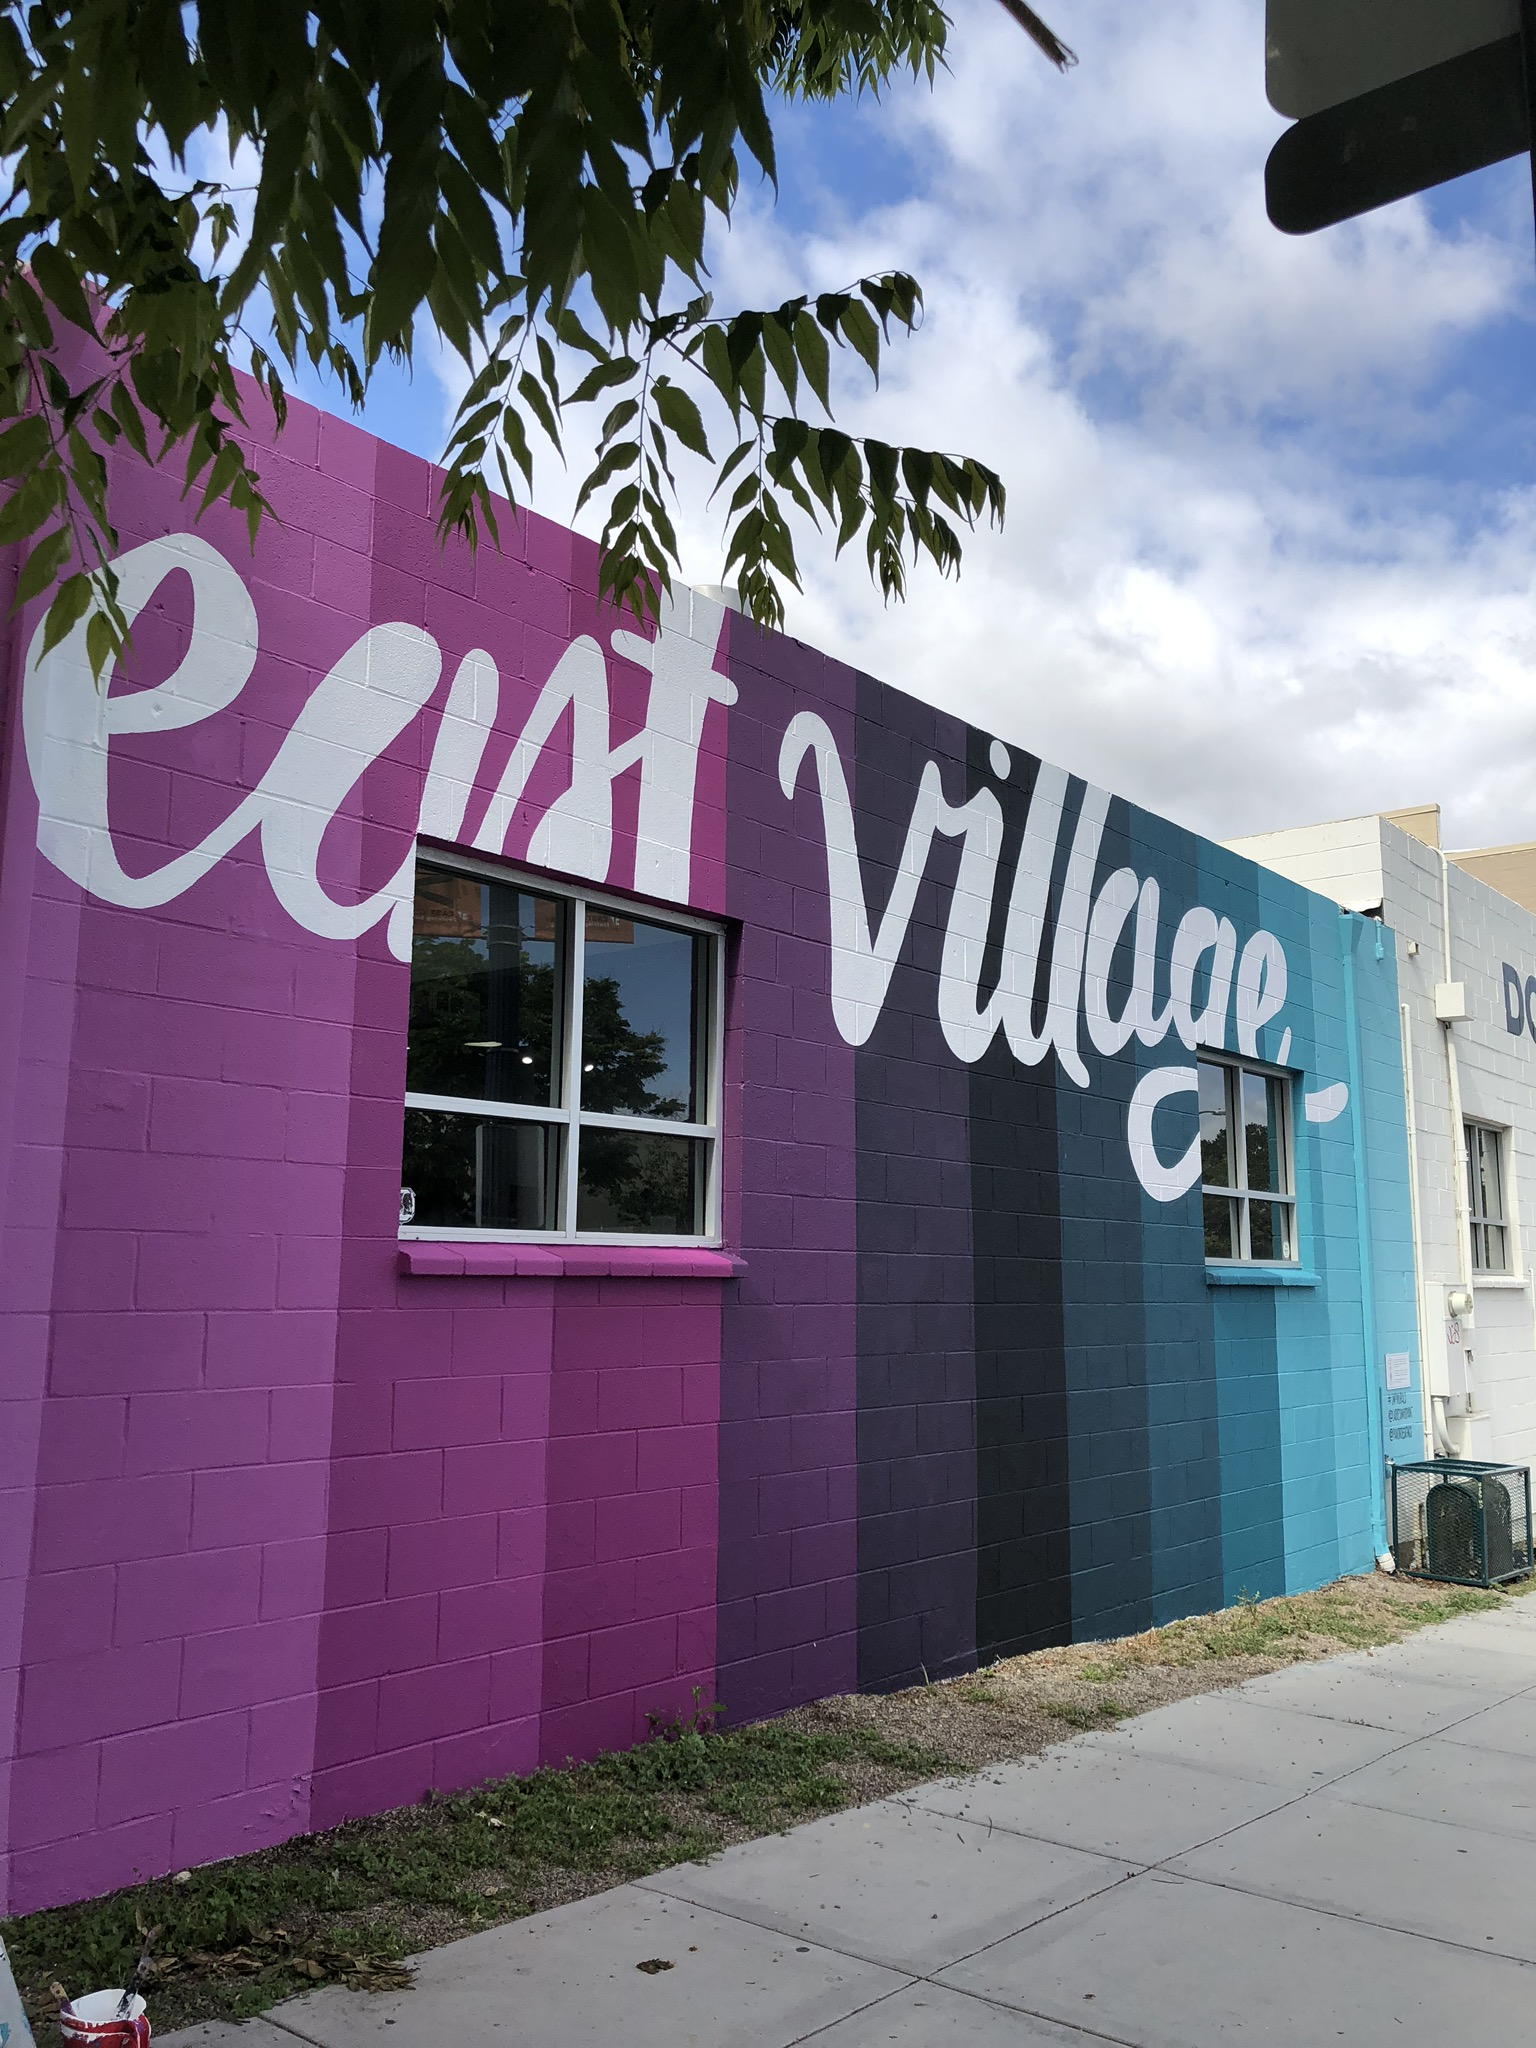 East Village San Diego Purple and Blue Gradient Hand Painted Mural